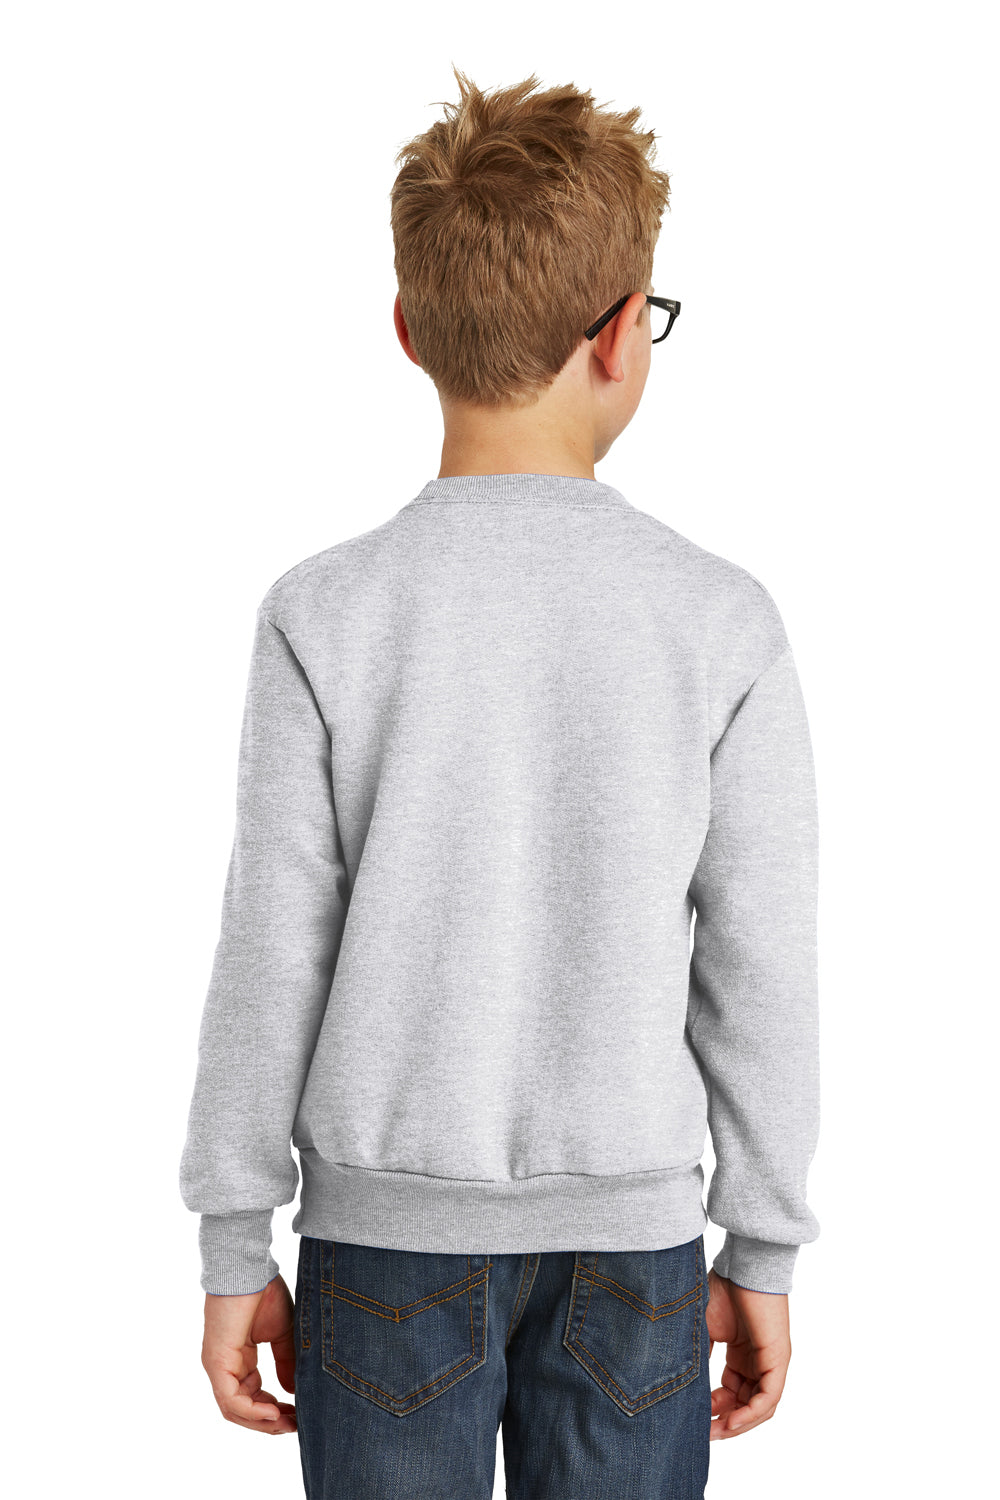 Port & Company PC90Y Youth Core Fleece Crewneck Sweatshirt Ash Grey Back